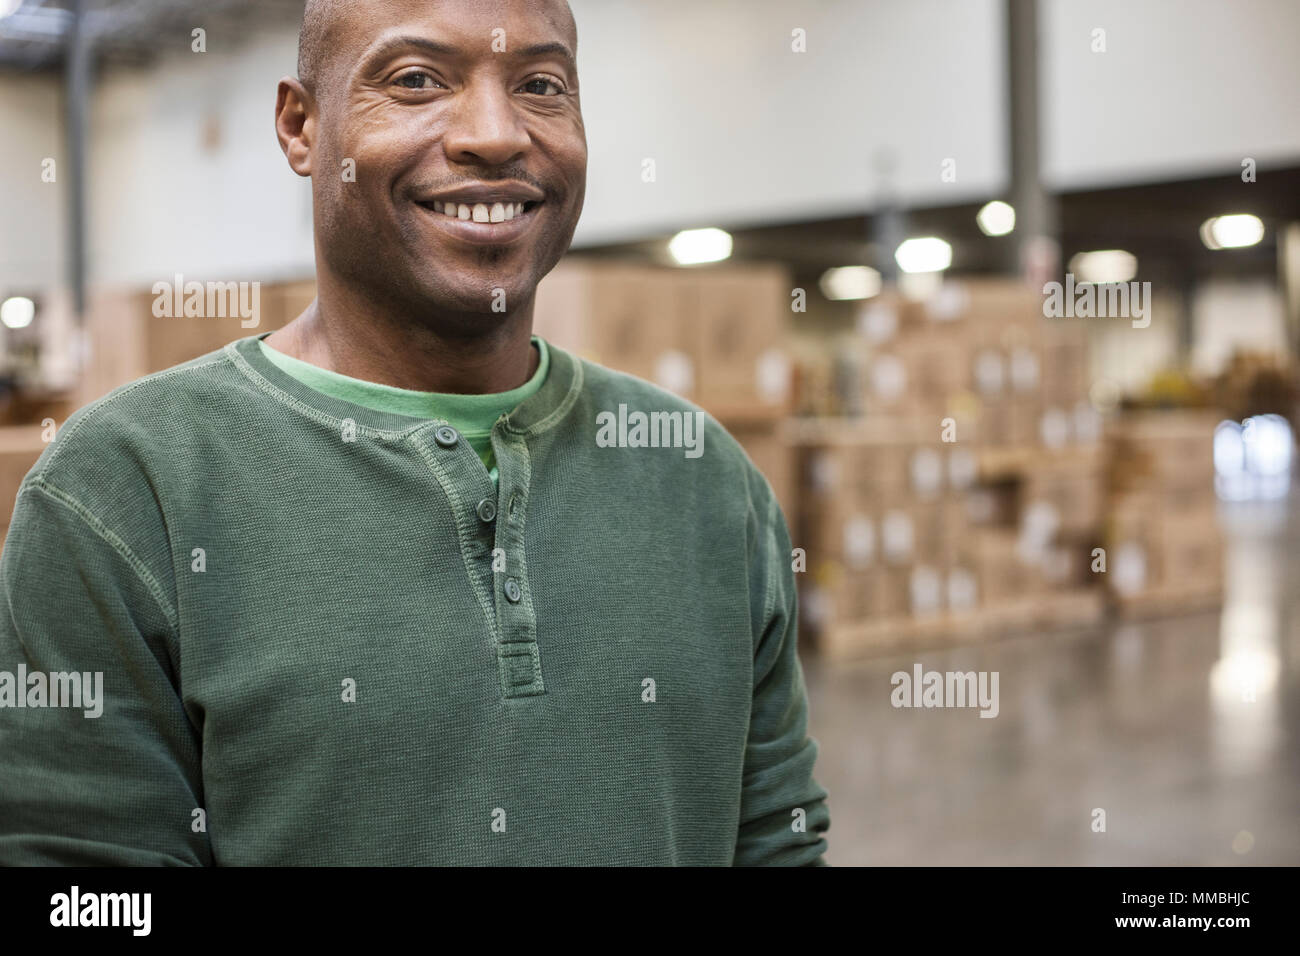 Portrait of an African American warehouse worker in a large distribution warehouse - Stock Image